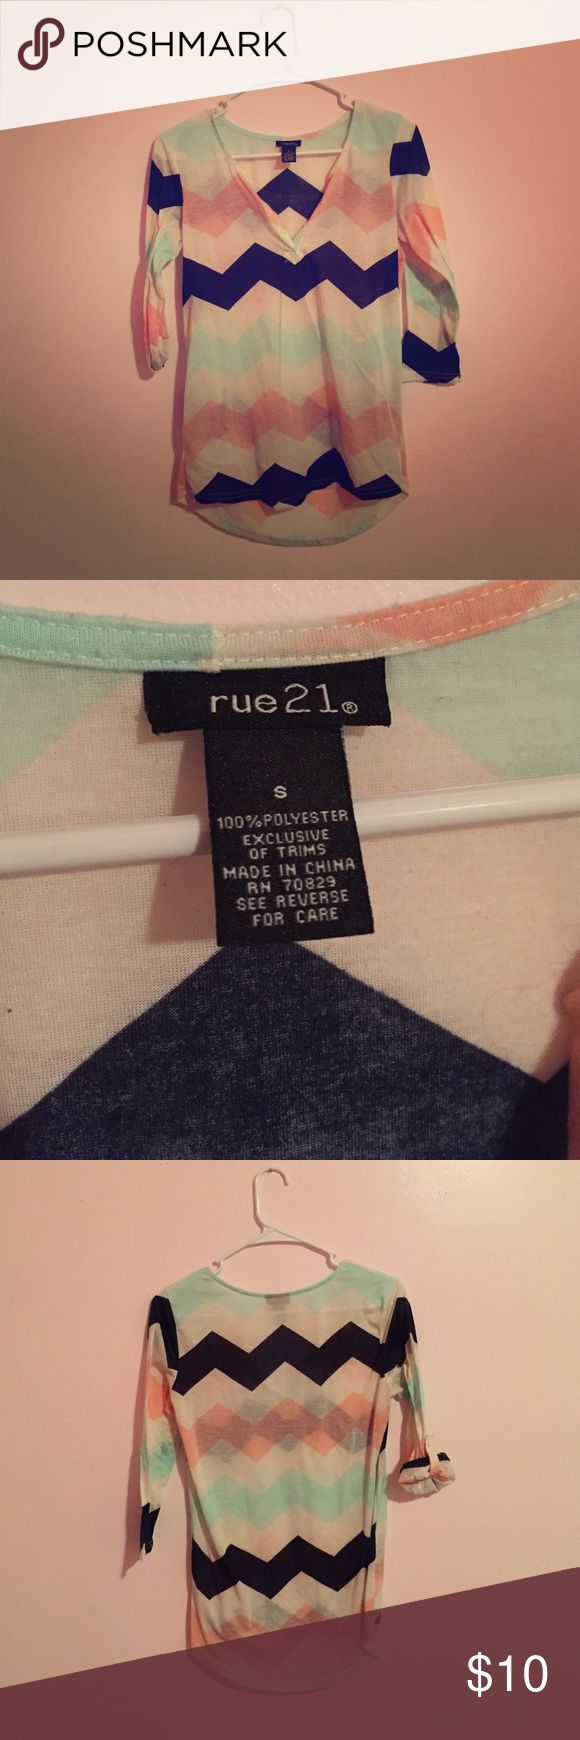 Rue 21 Chevron Top Size small, slightly worn, sleeves can be buttoned up or left down Rue21 Tops Blouses